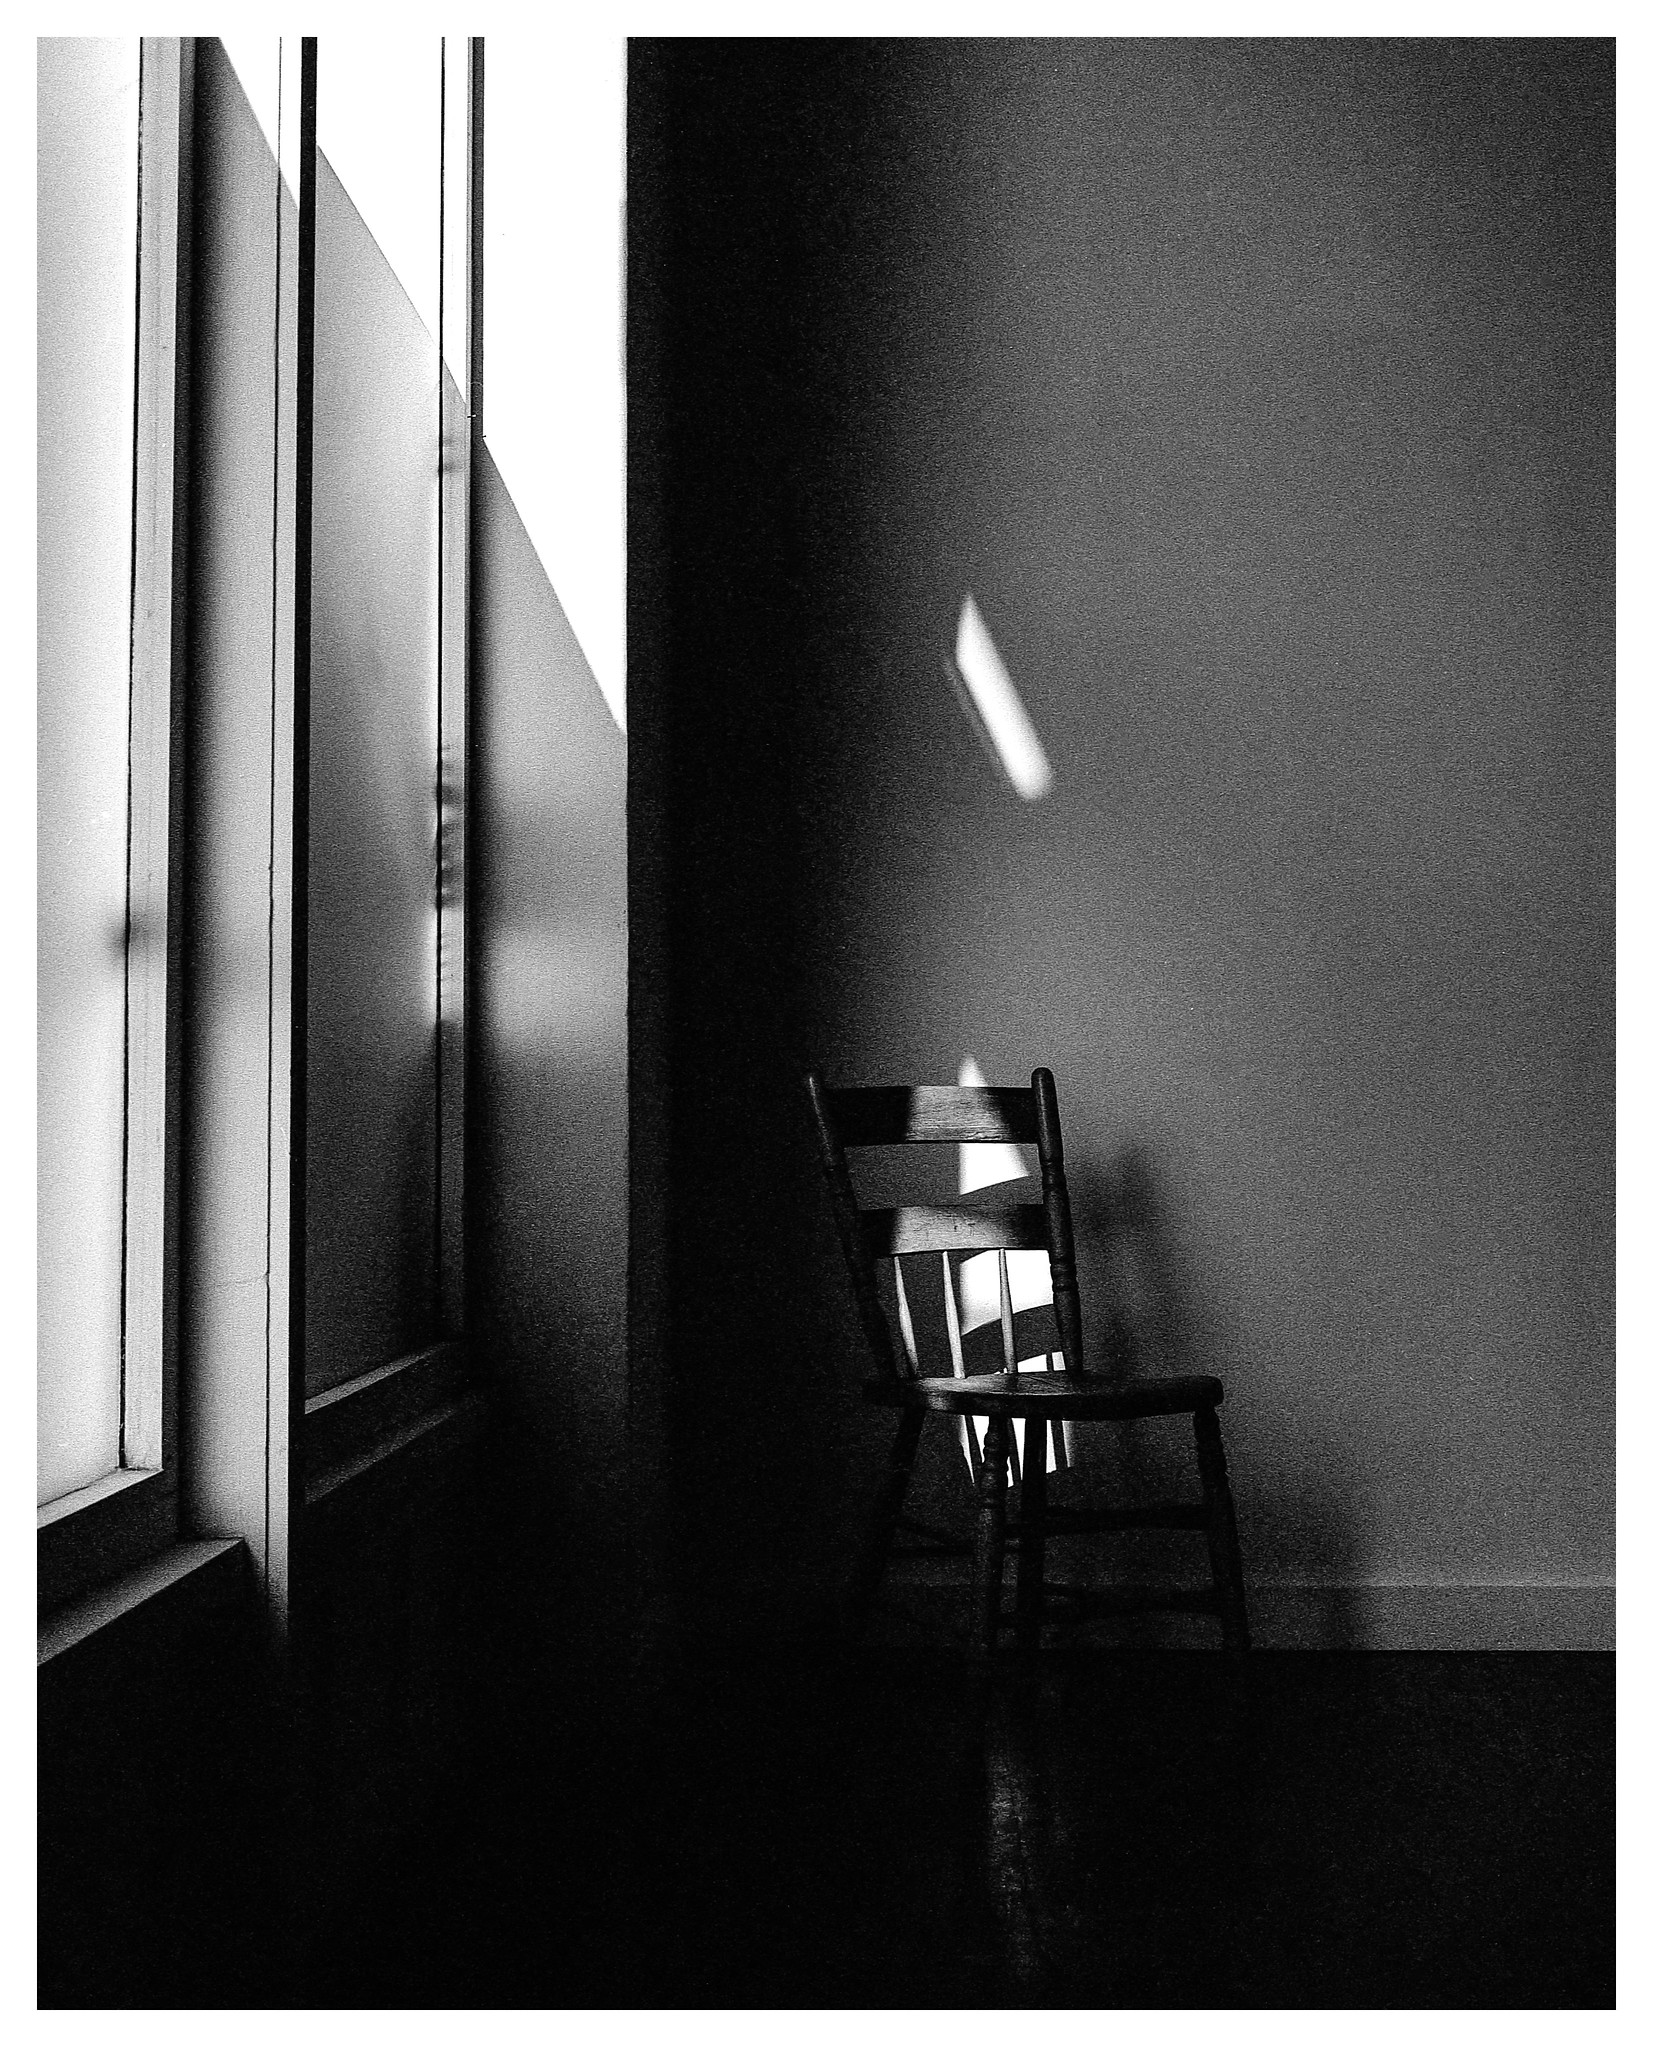 In addition to being a sucker for lone tree images, I also love lone chair images. This was in the Carrs' studio and the light coming thru the window drew me in. To me this scene was a stark contrast to all of the activity going on outside and throughout the rest of the city.